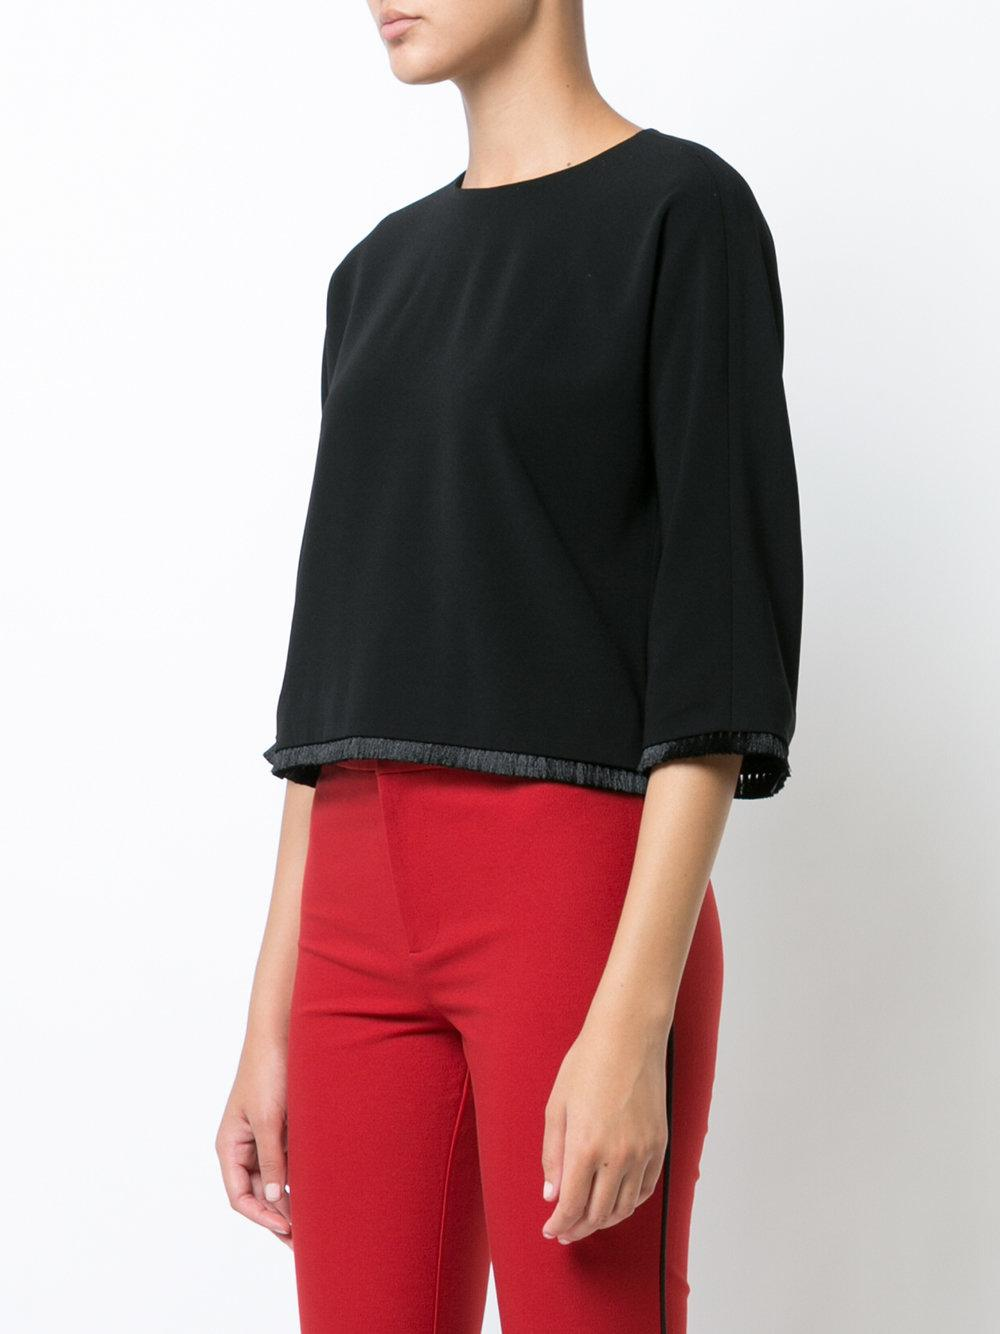 Cropped Short Sleeve Top - Red Derek Lam Inexpensive Cheap Online fMWvYp